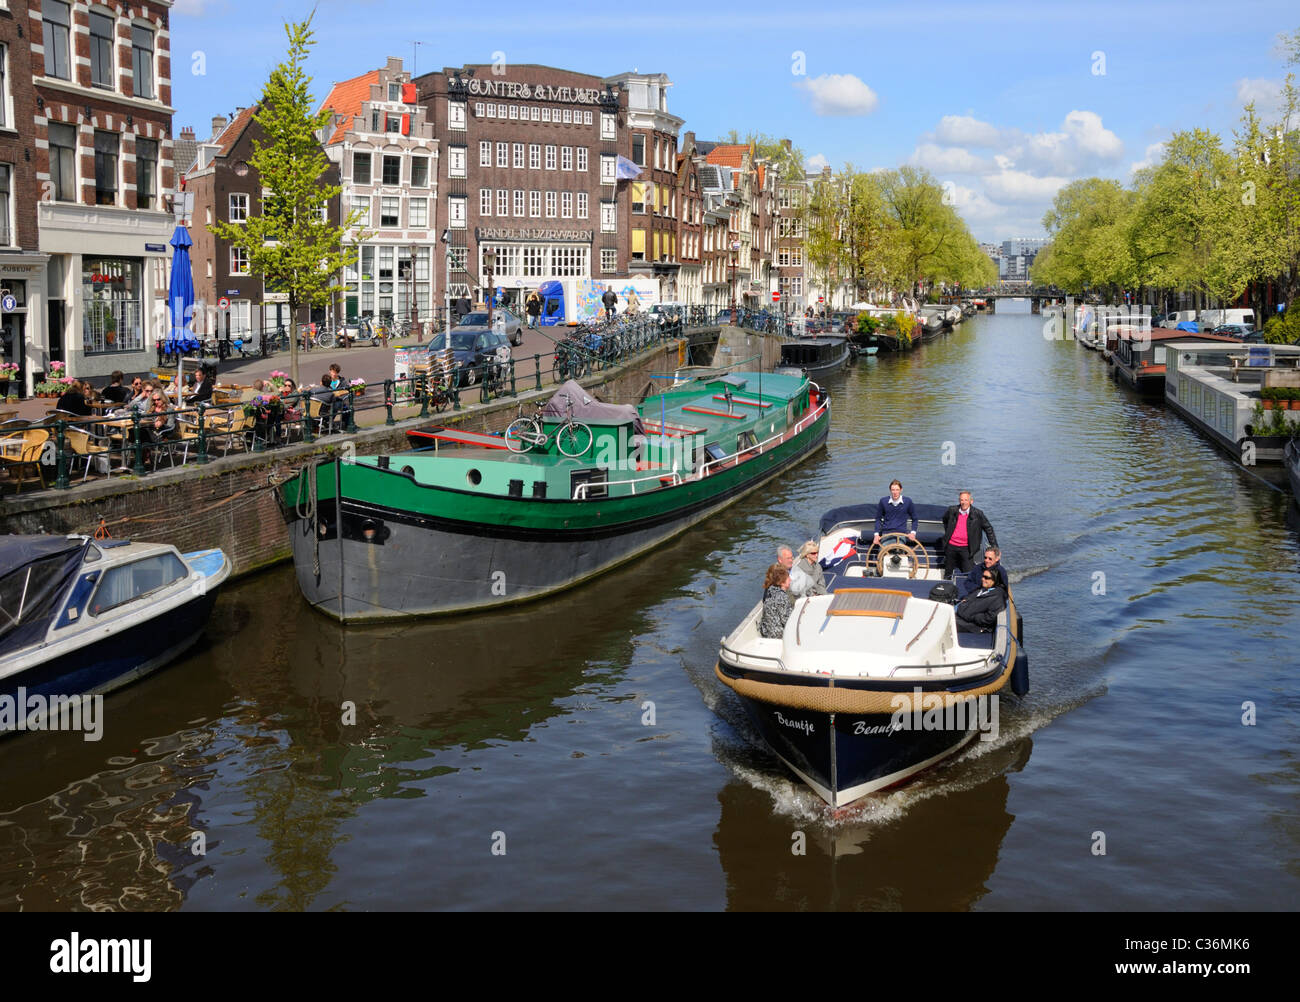 Amsterdam, Netherlands. Boats on Prinsengracht canal - Stock Image